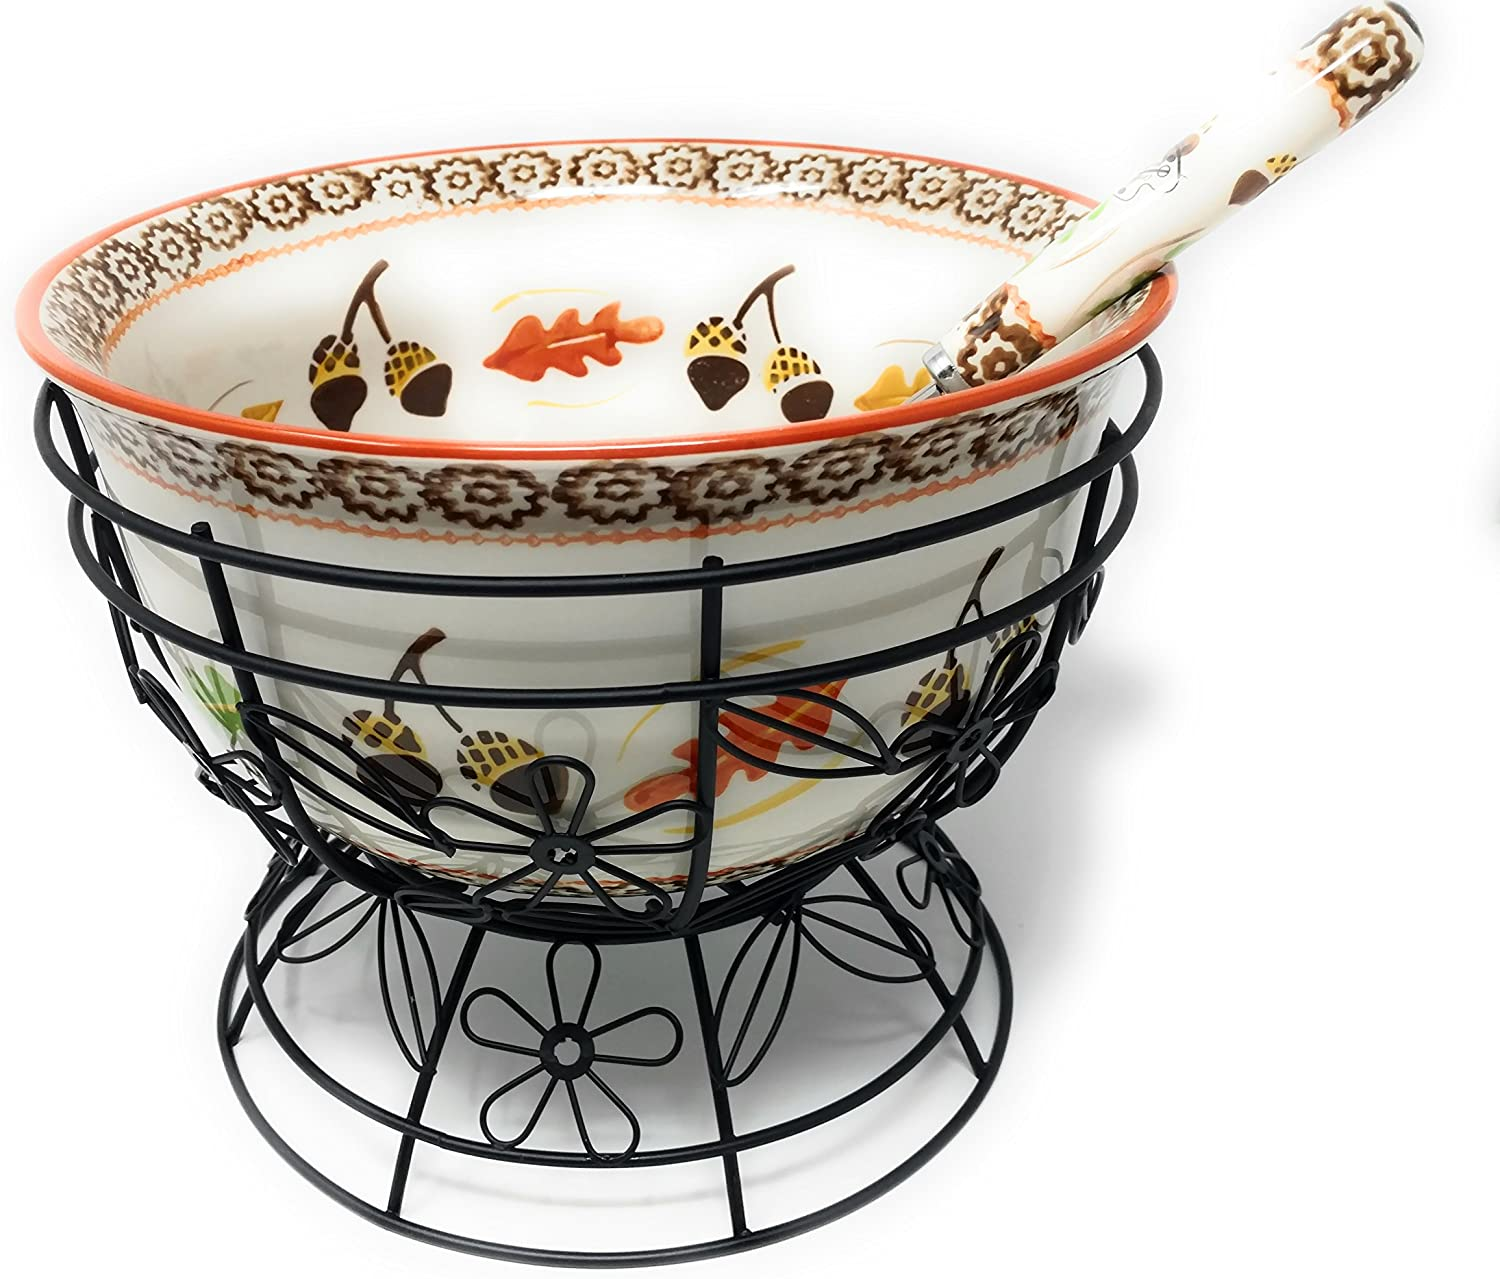 Temp-tations 4.5 qt Bowl w Soup Ladle Punch Ranking TOP18 Ranking TOP3 Wire Stand